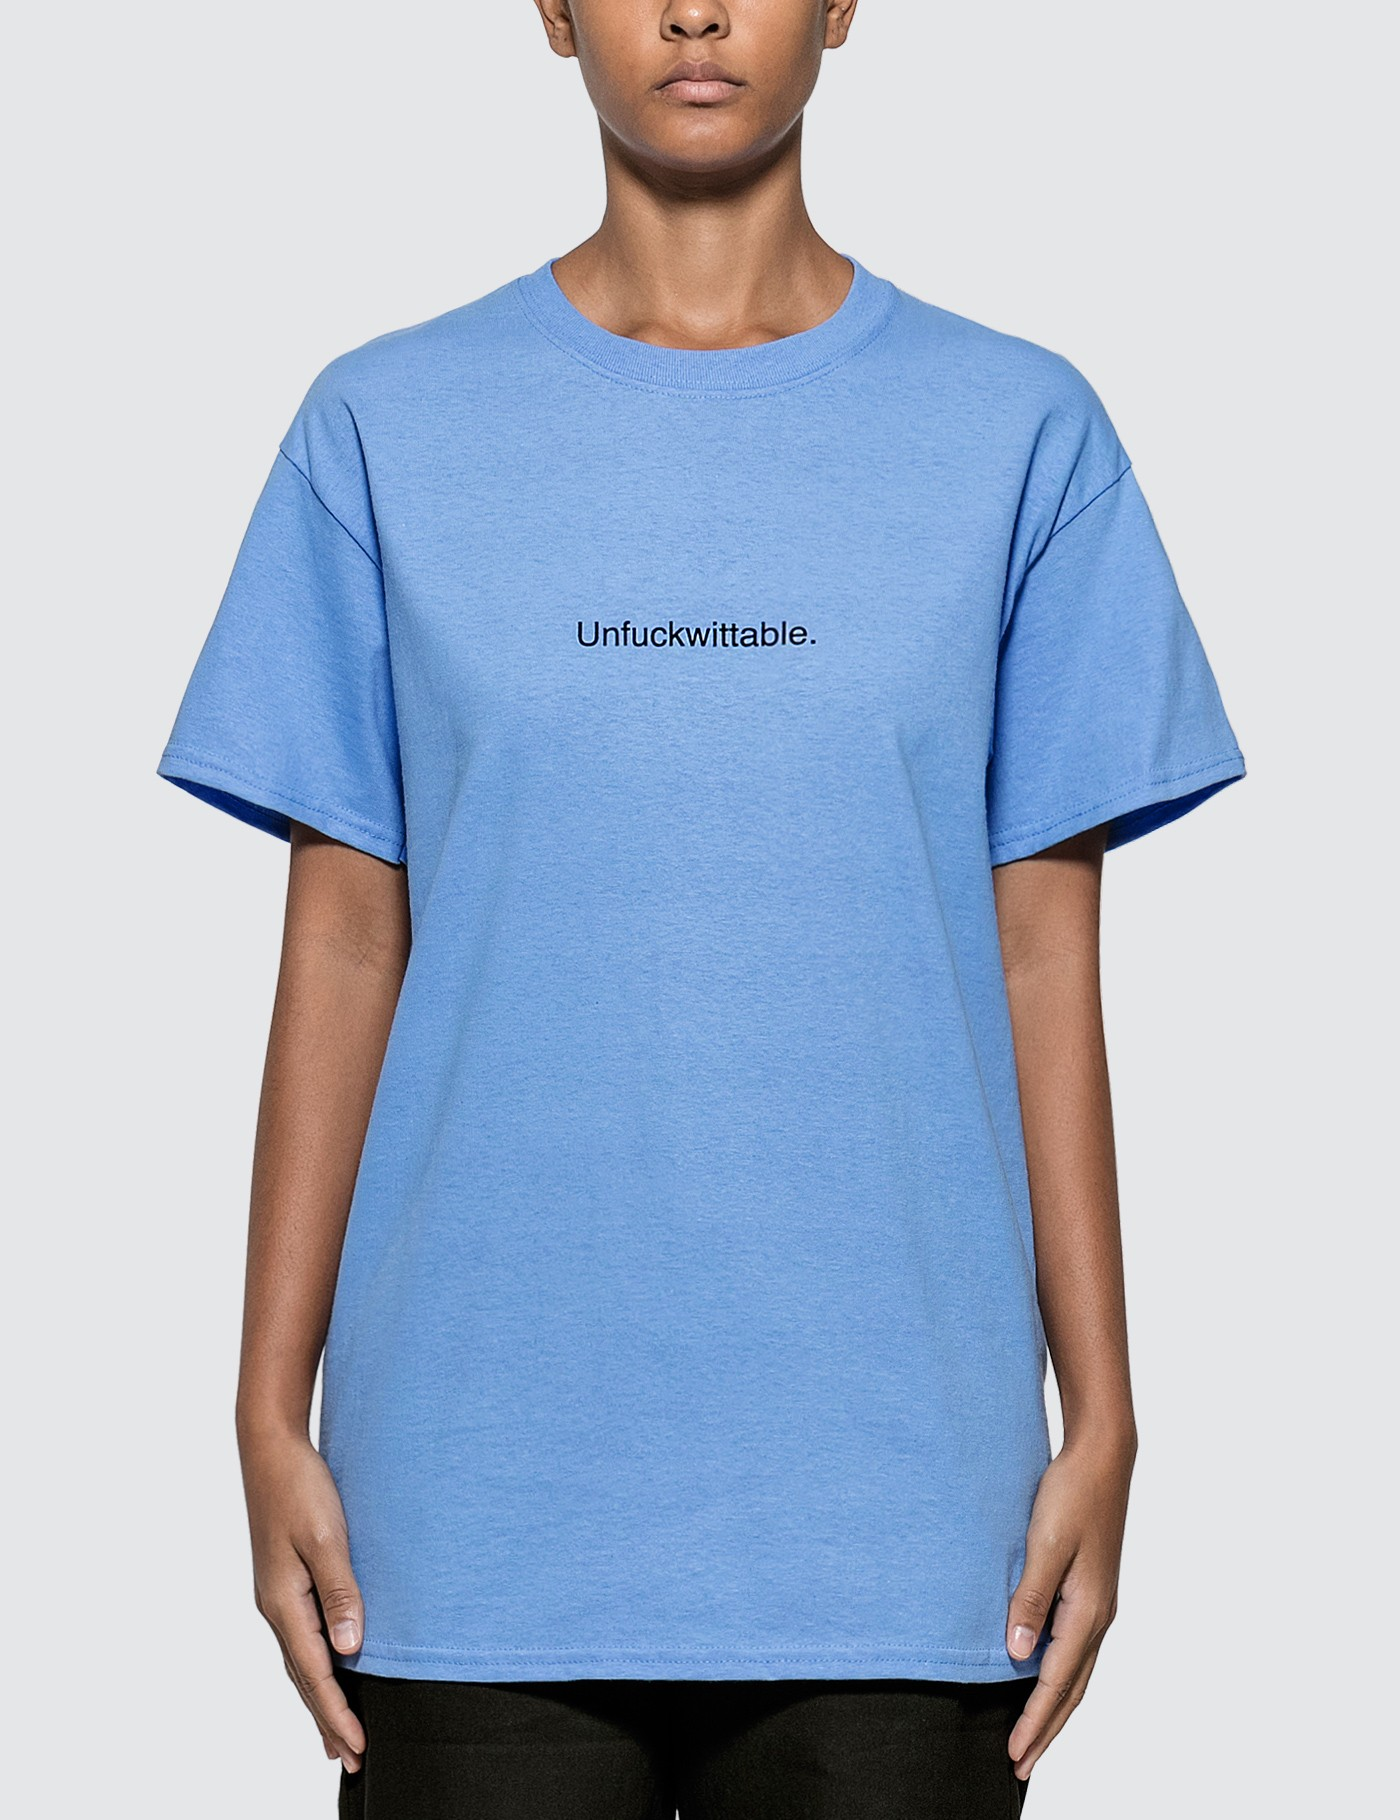 F.A.M.T. Unfuckwittable. T-shirt